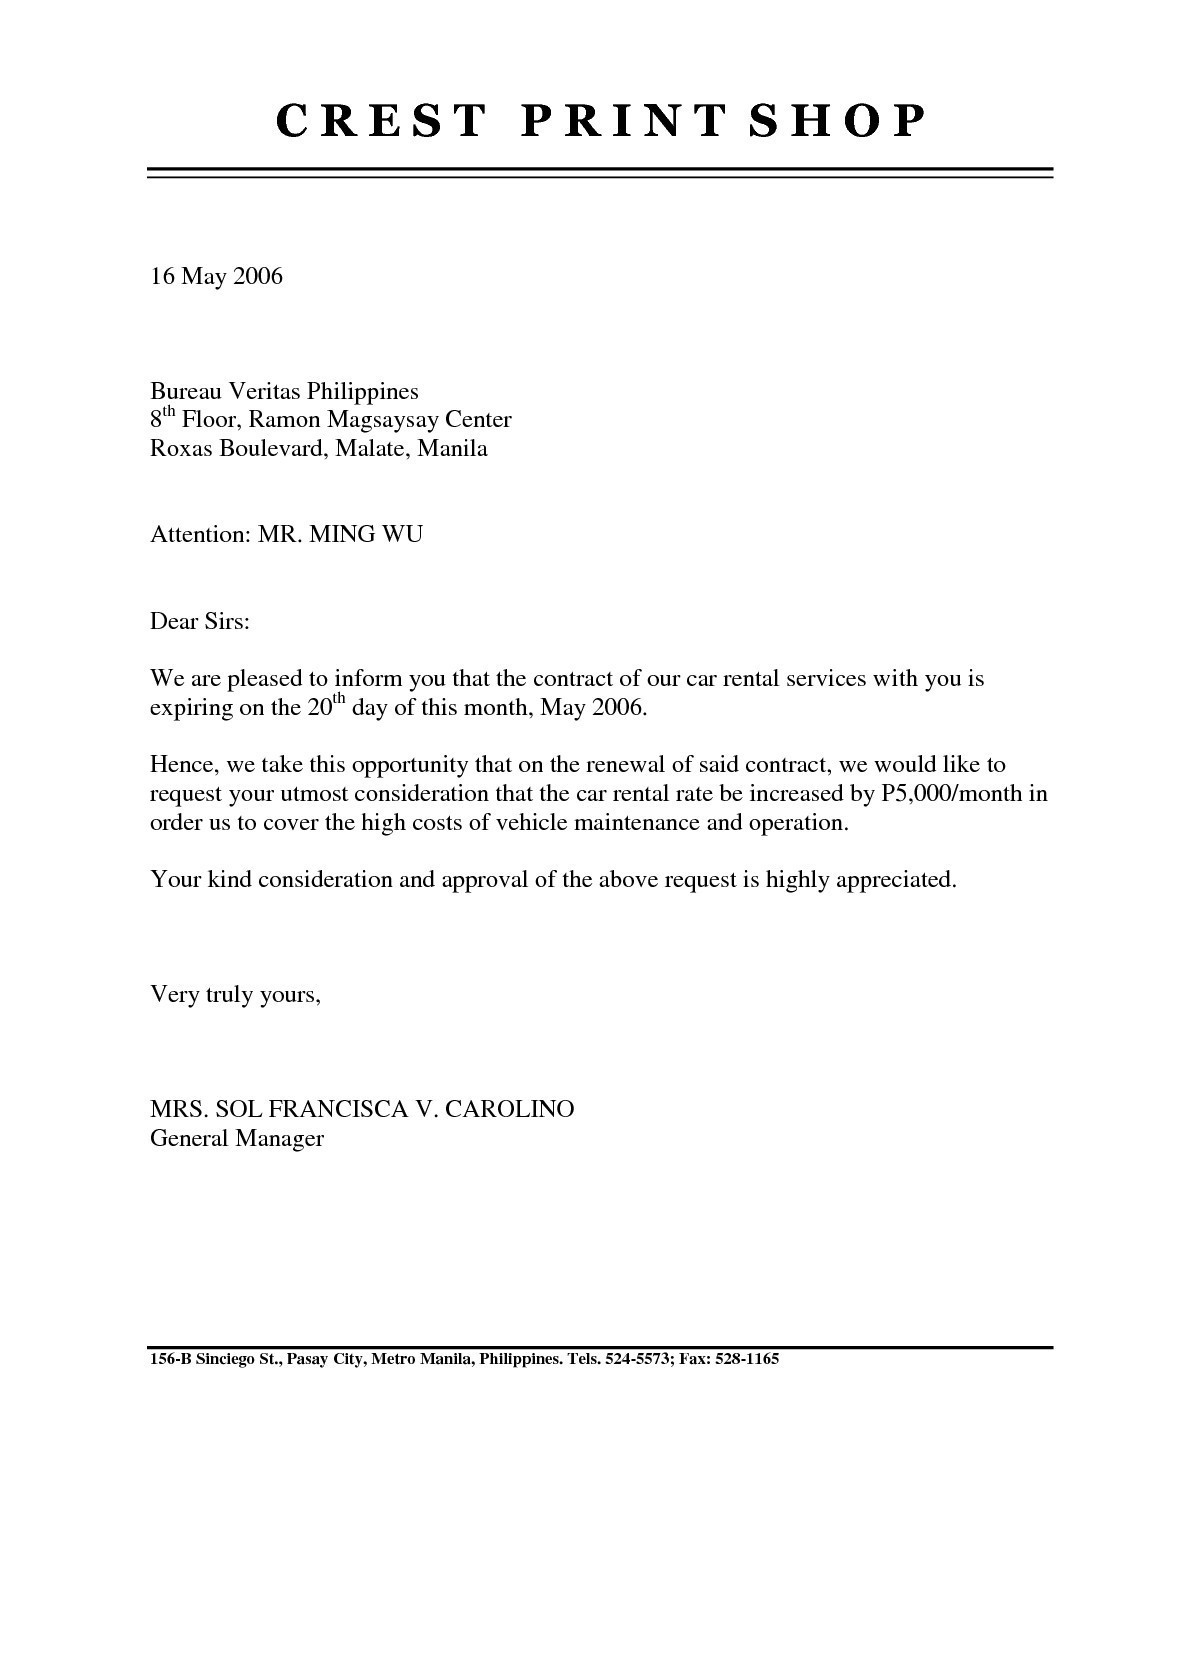 Business Lease Proposal Template Valid Lease Renewal Letter Within Business Lease Proposal Template